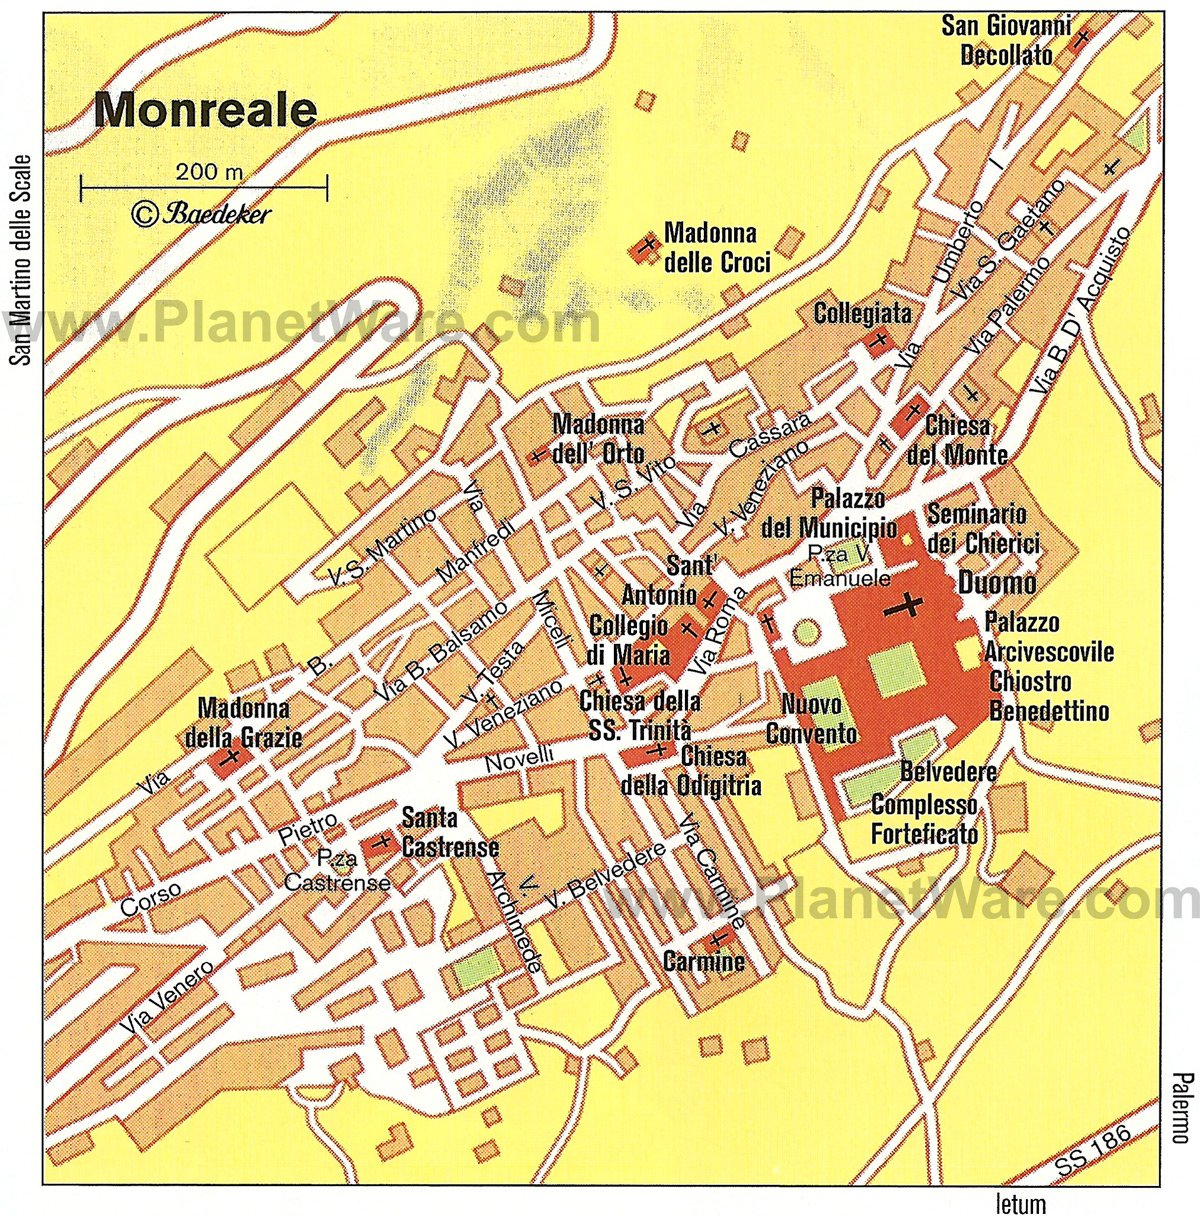 Monreale Map - Tourist Attractions